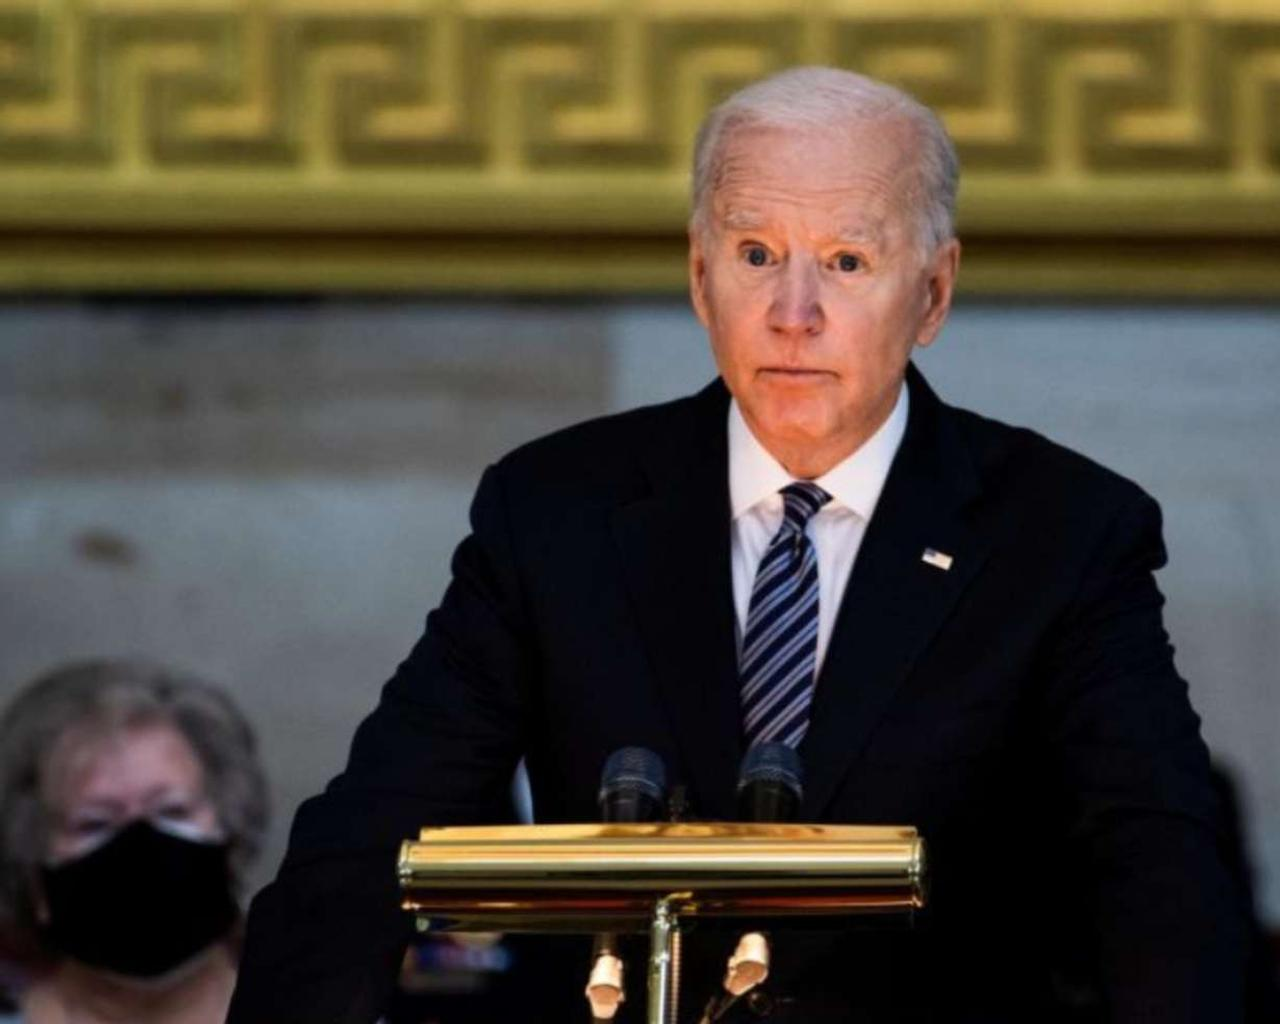 Joe Biden was invited to deliver his first address to a joint session of the US Congress.